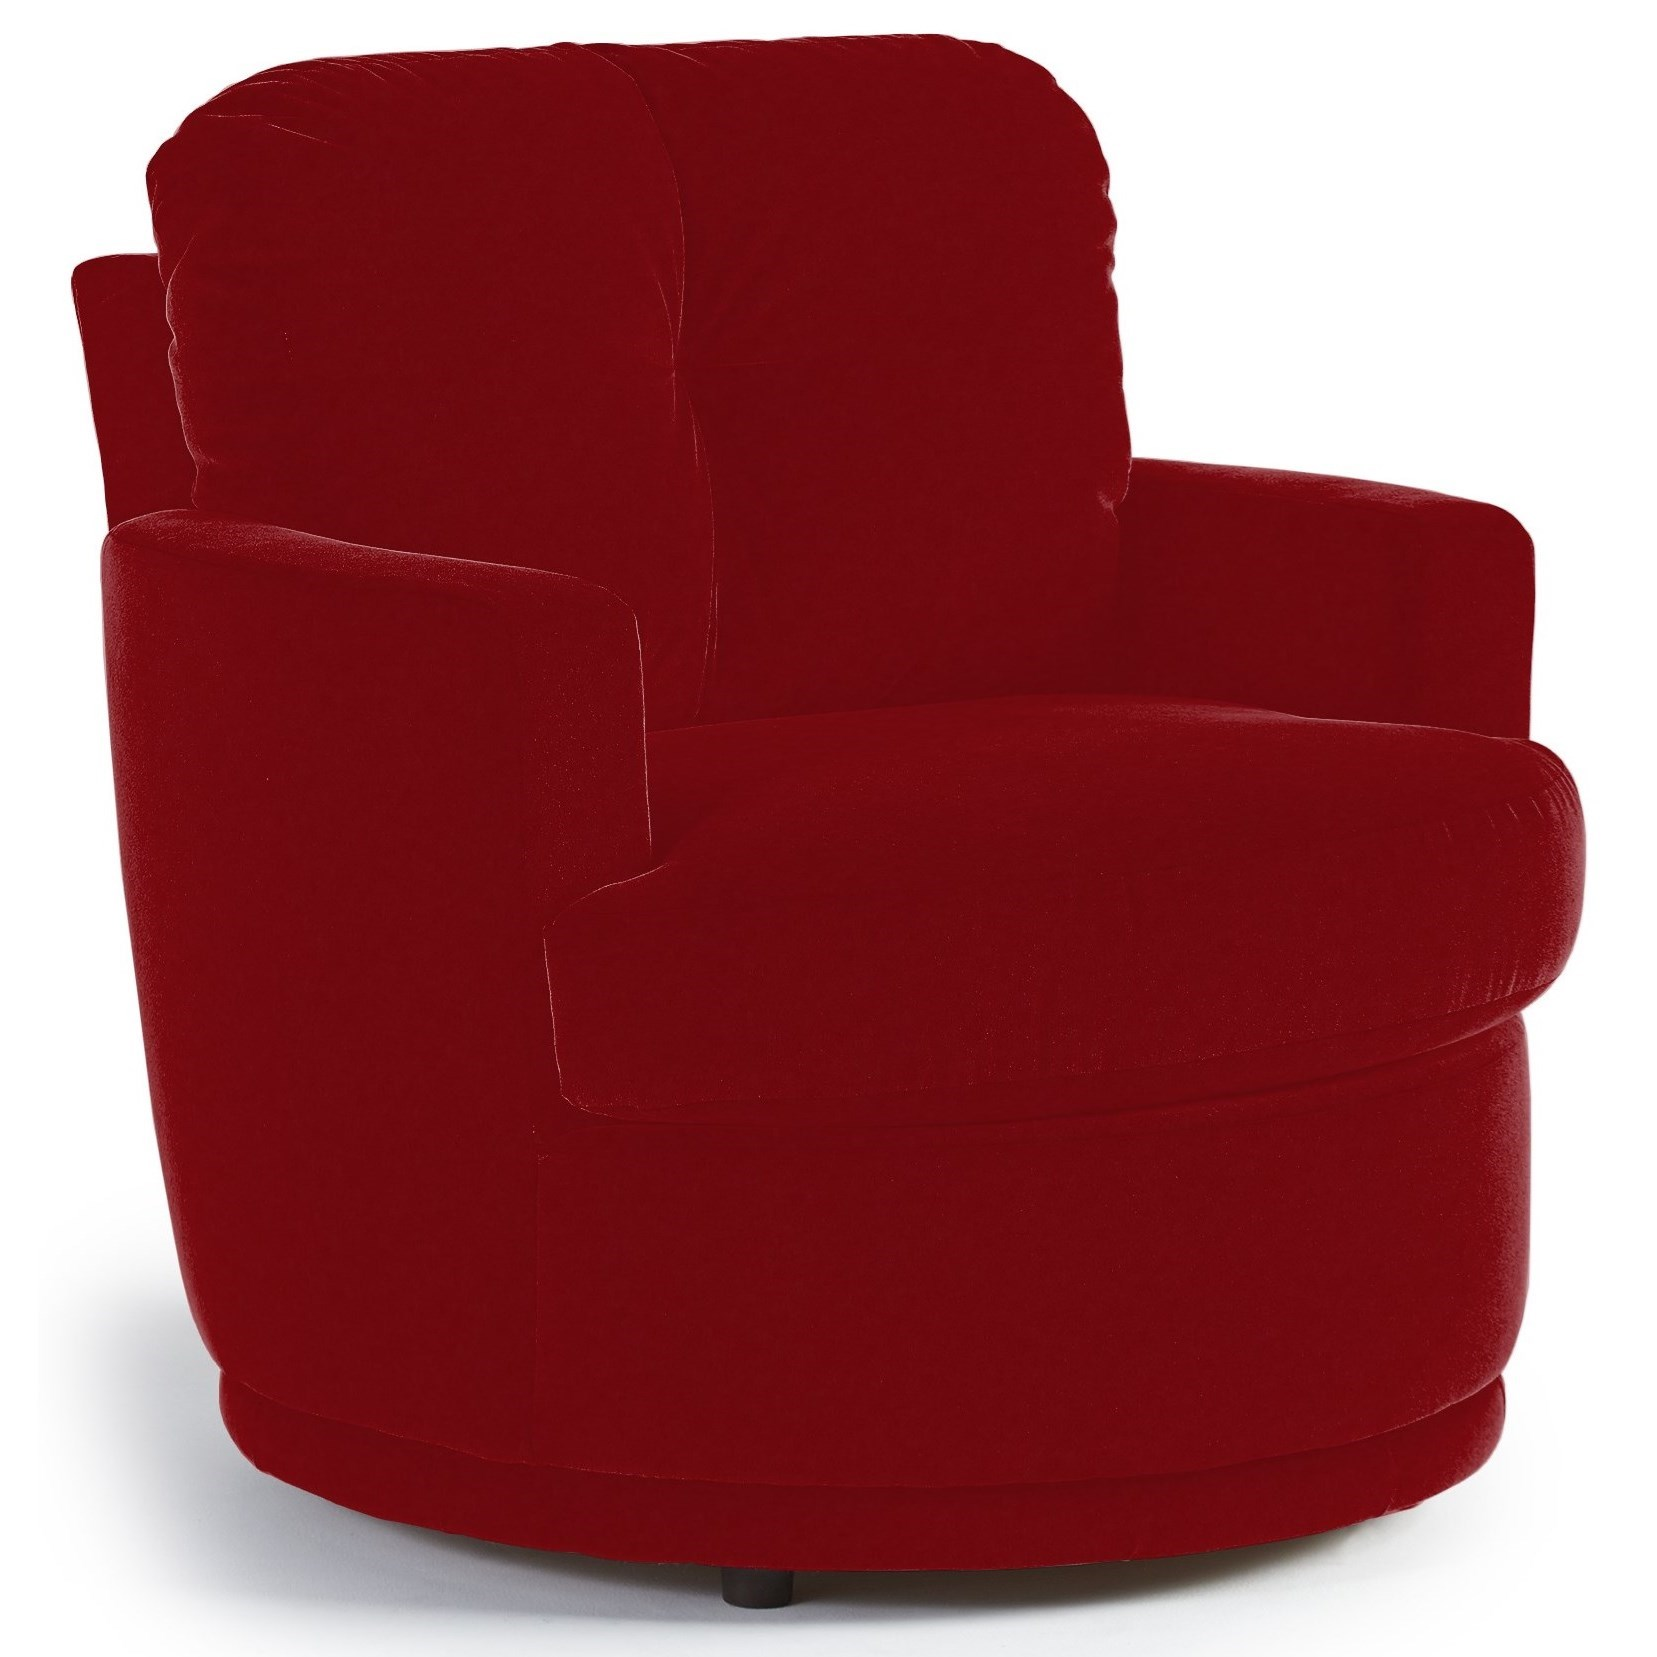 Plush Chairs Best Home Furnishings Chairs Swivel Barrel Skipper Swivel Chair